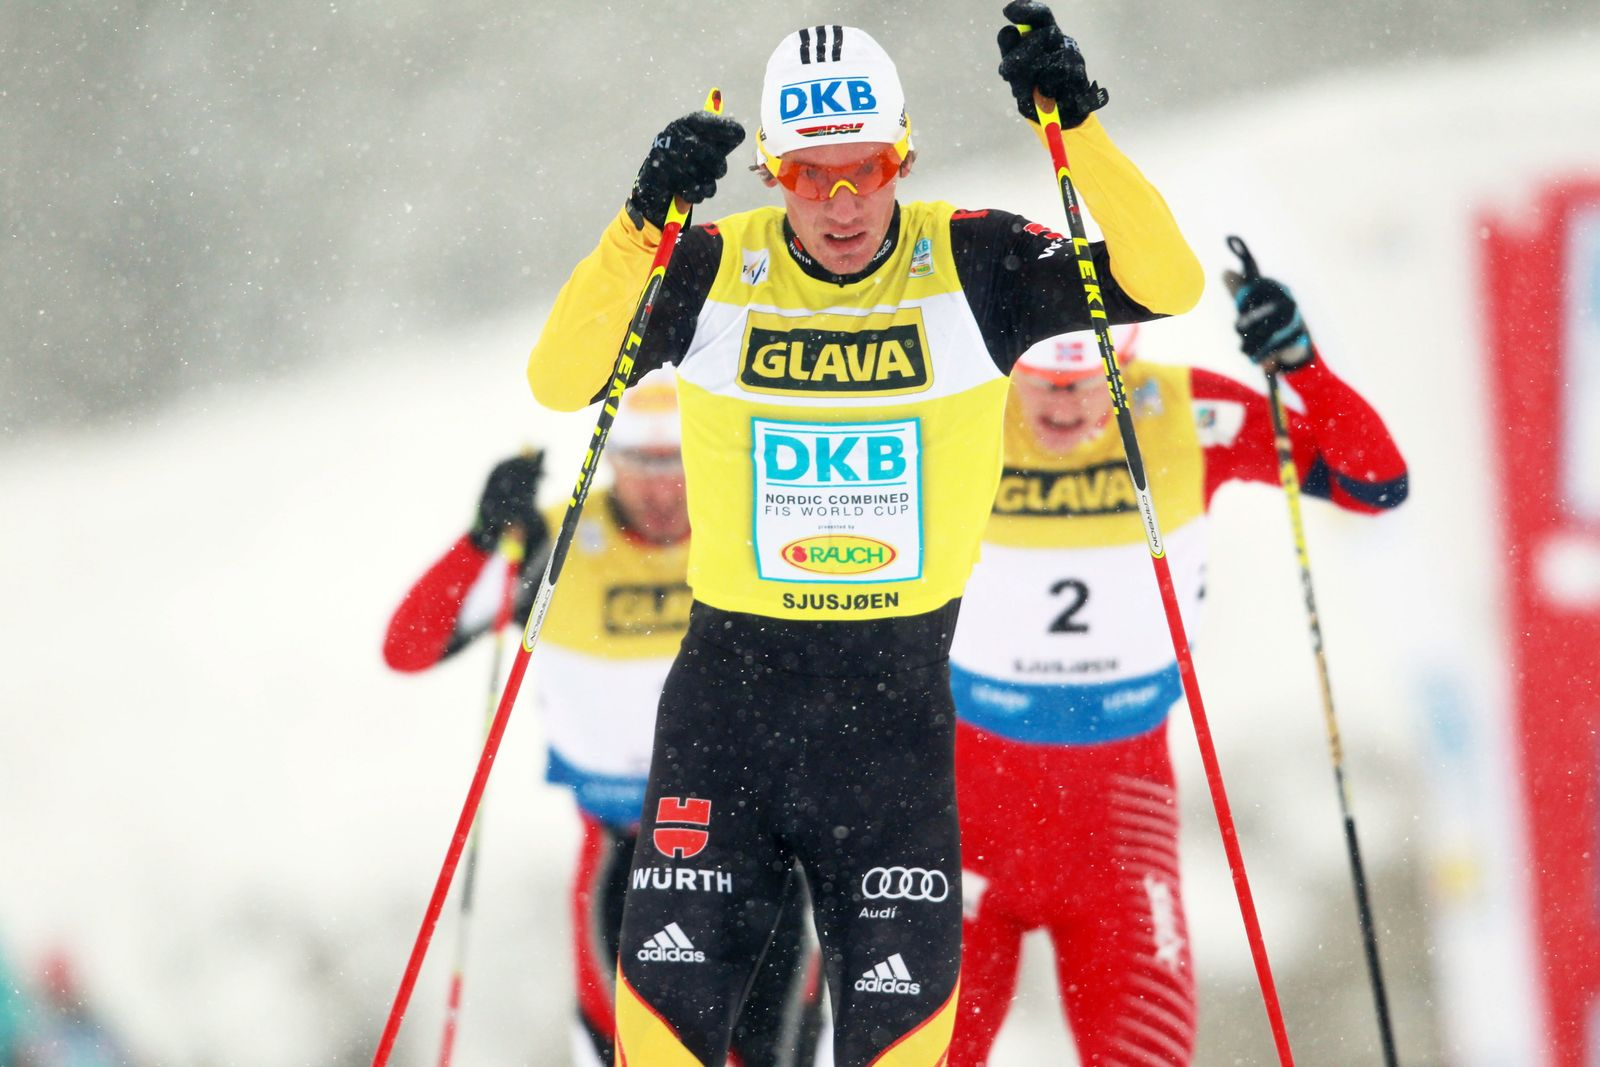 Nordic Combined World Cup competition in Sjusjoen